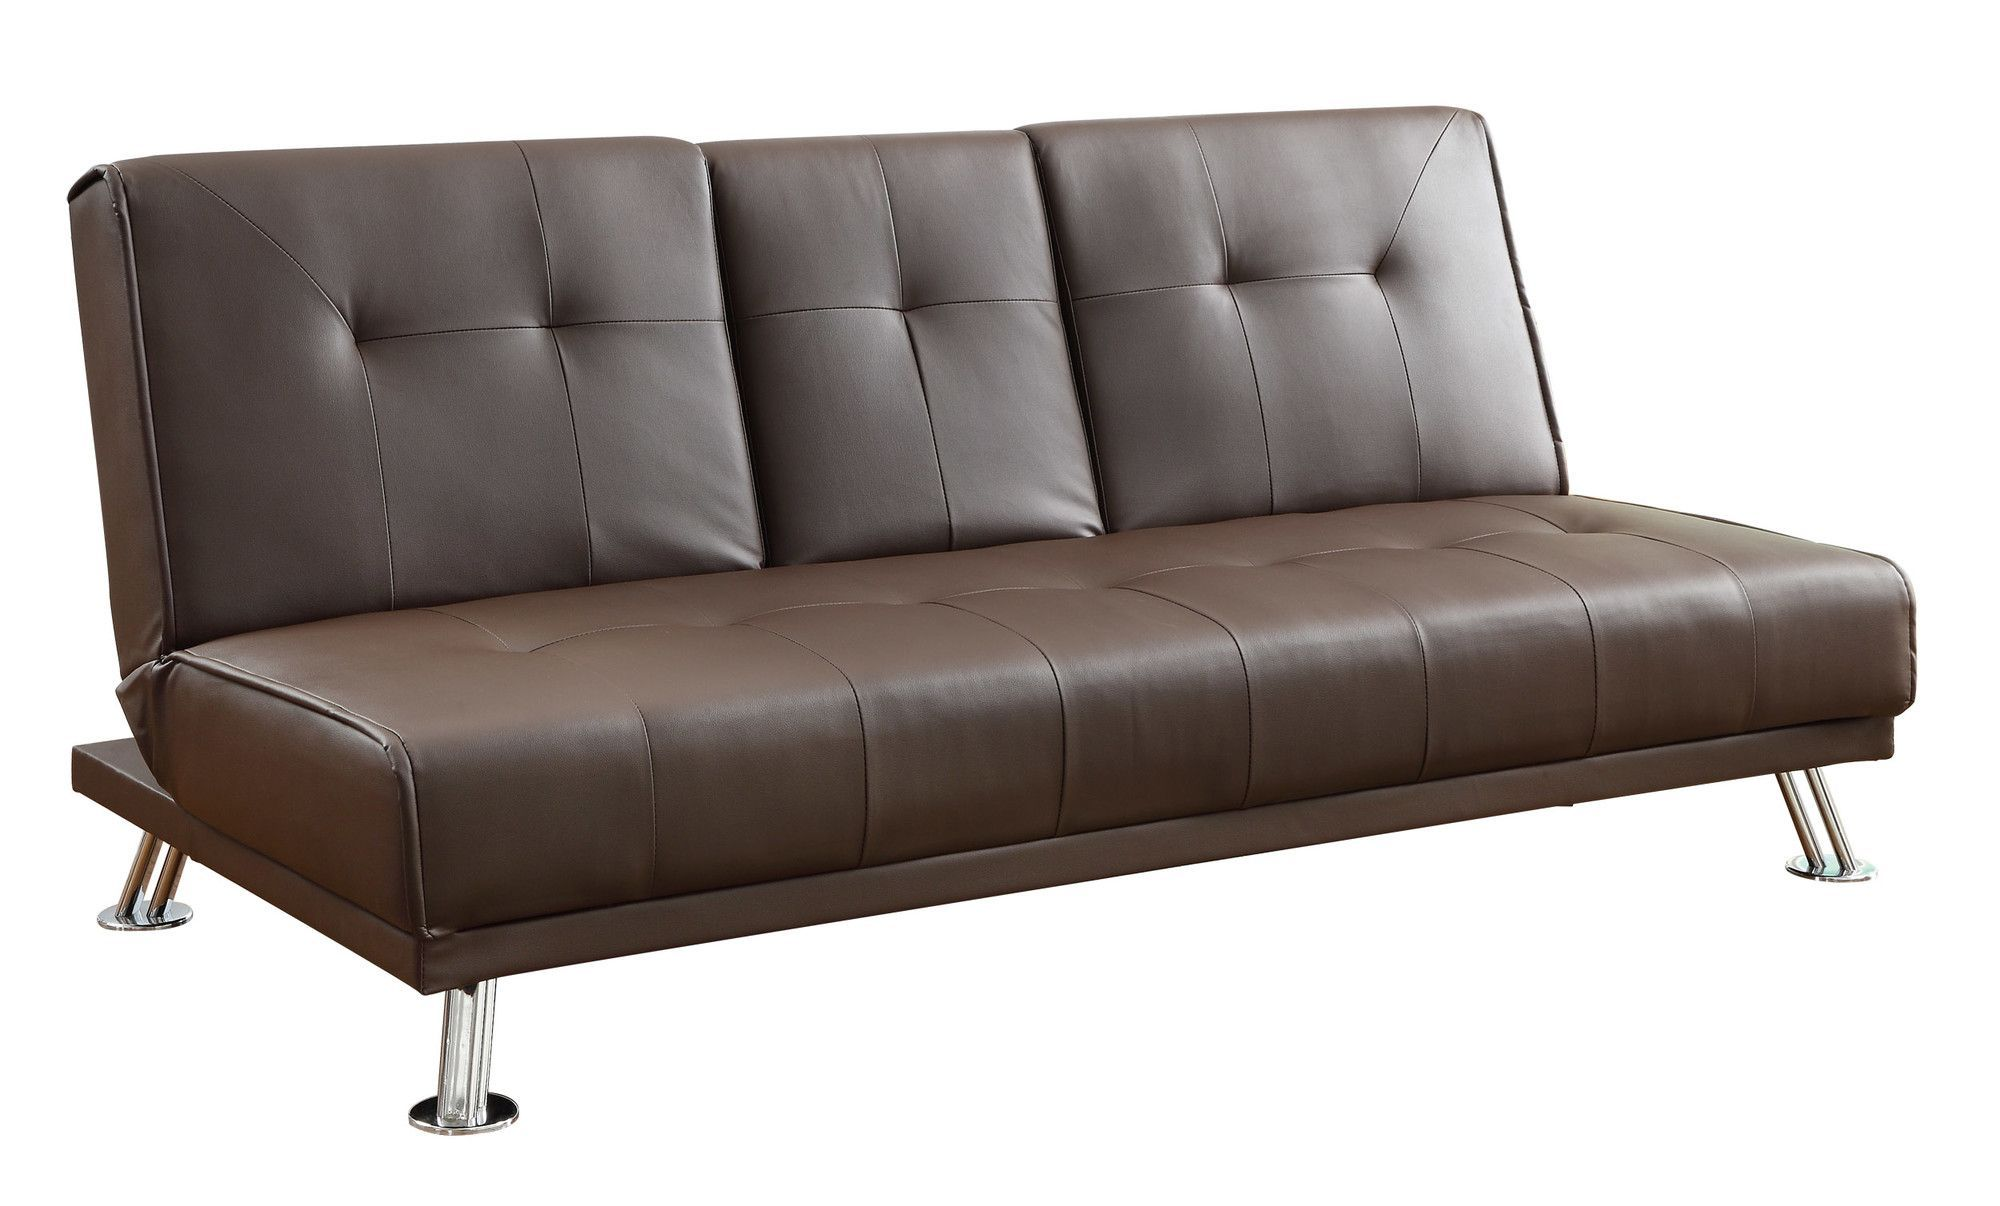 Profile sleeper sofa products pinterest sleeper sofas and products